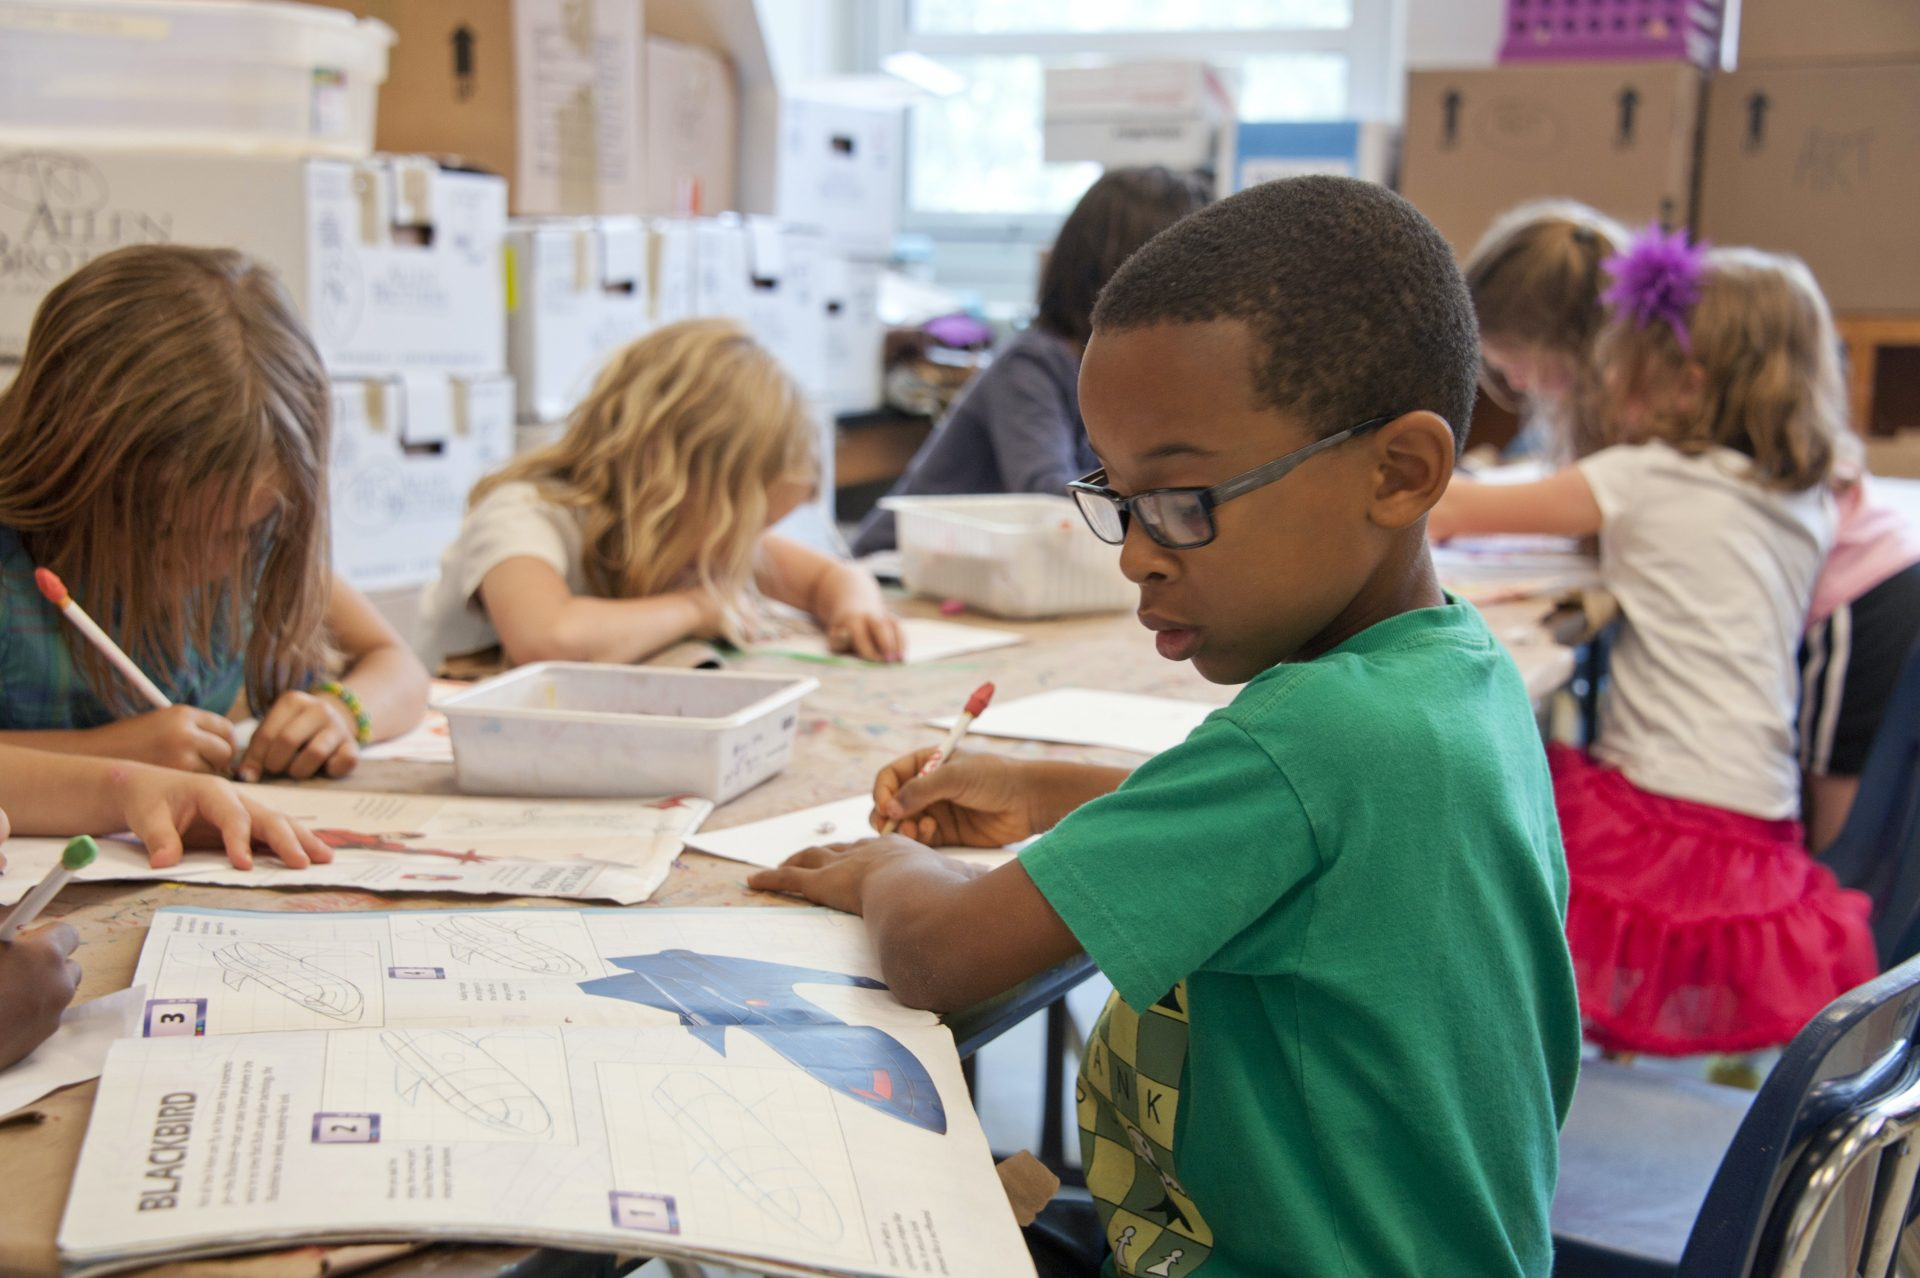 Can Our Evolutionary Past Help Shape Our Classrooms' Future?